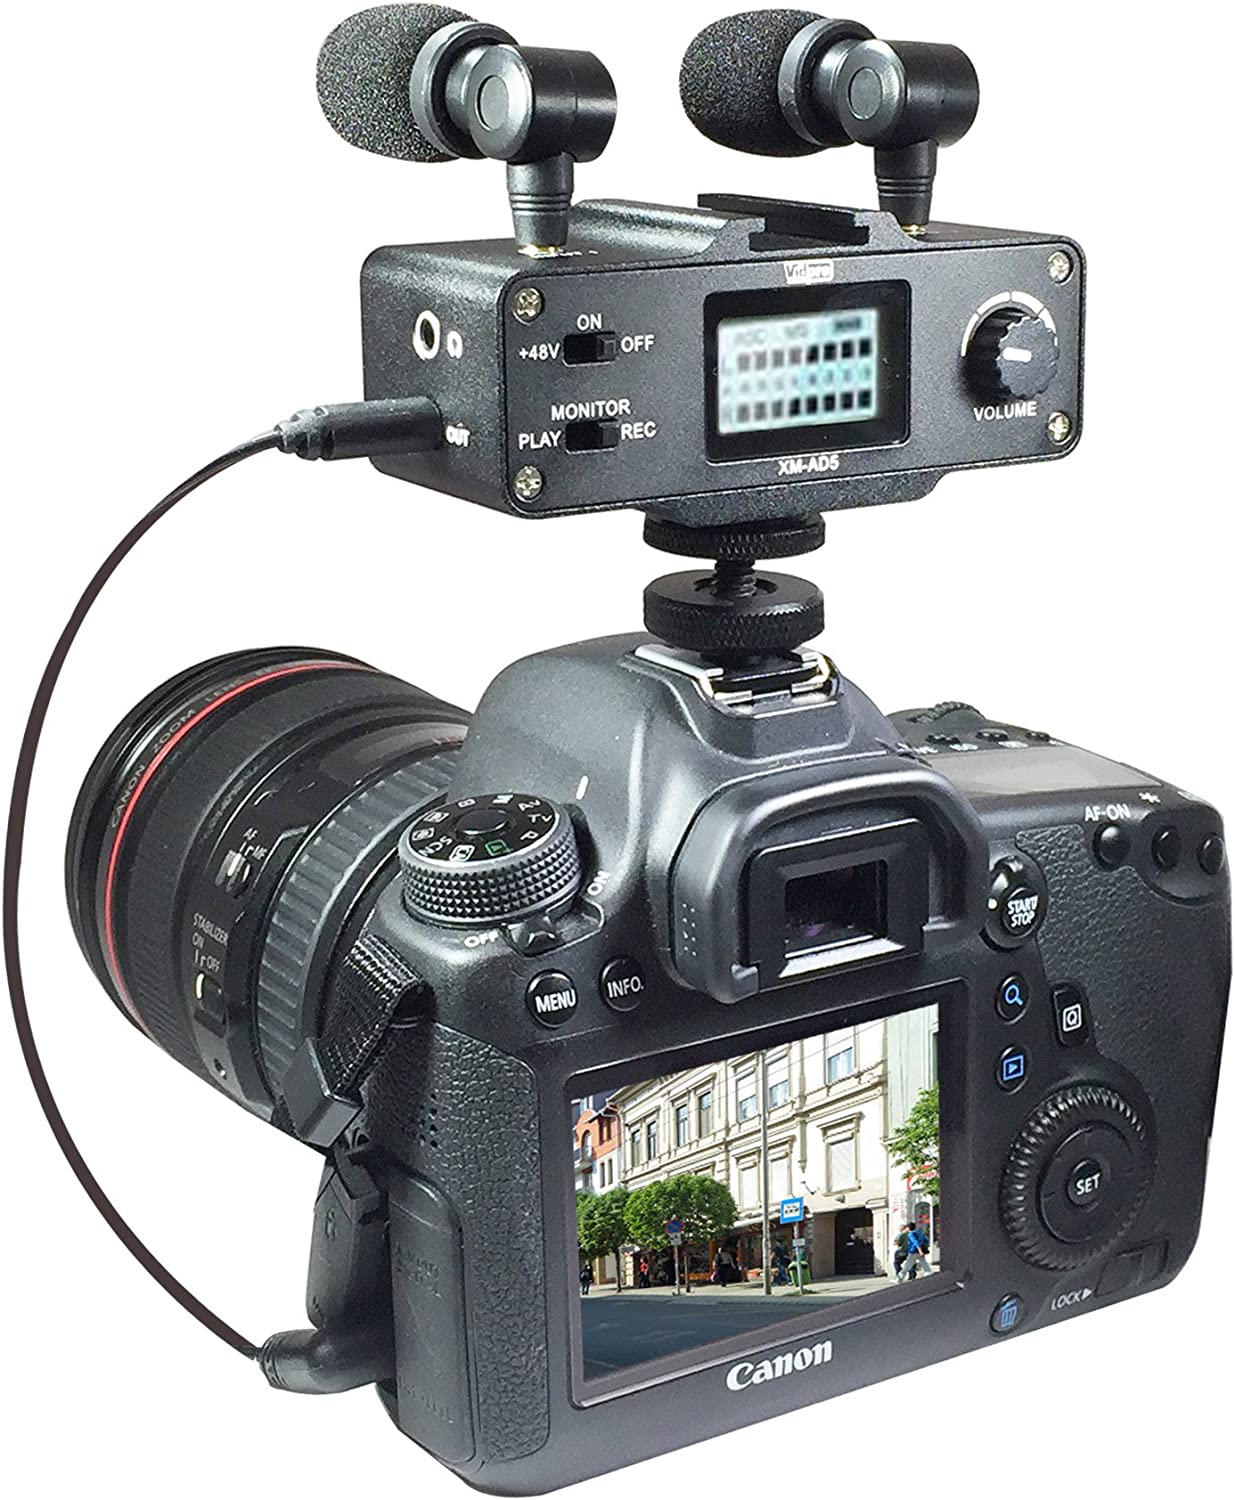 Panasonic HDC-SD900 Camcorder External Microphone Vidpro XM-AD5 Mini Pre-Amp Smart Mixer with Dual Condenser Microphones for DSLR/'s with SDC-26 Case Video Cameras and Phones